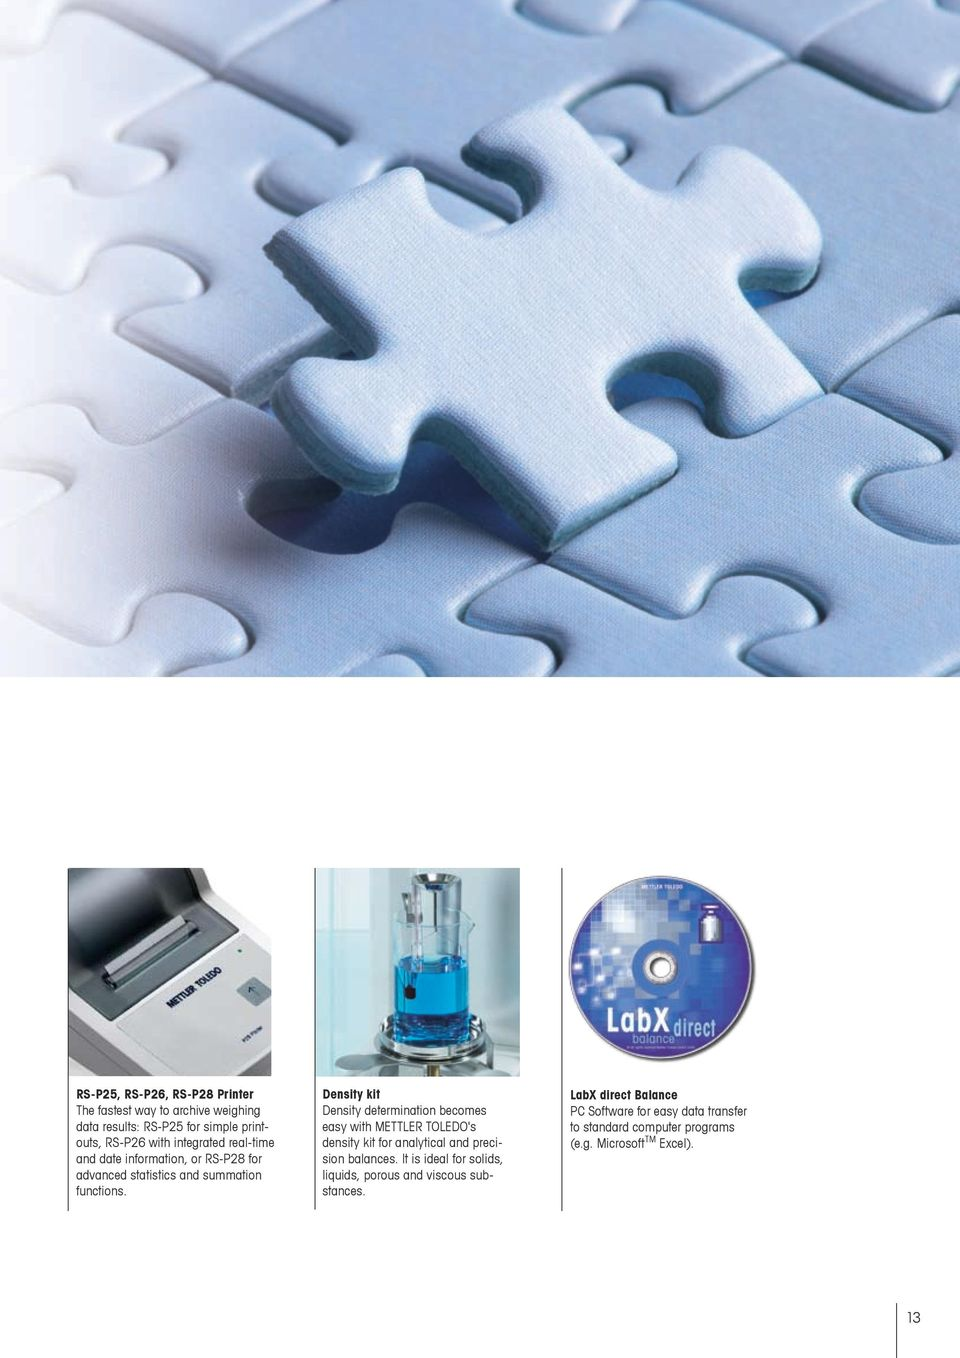 Density kit Density determination becomes easy with METTLER TOLEDO's density kit for analytical and precision balances.